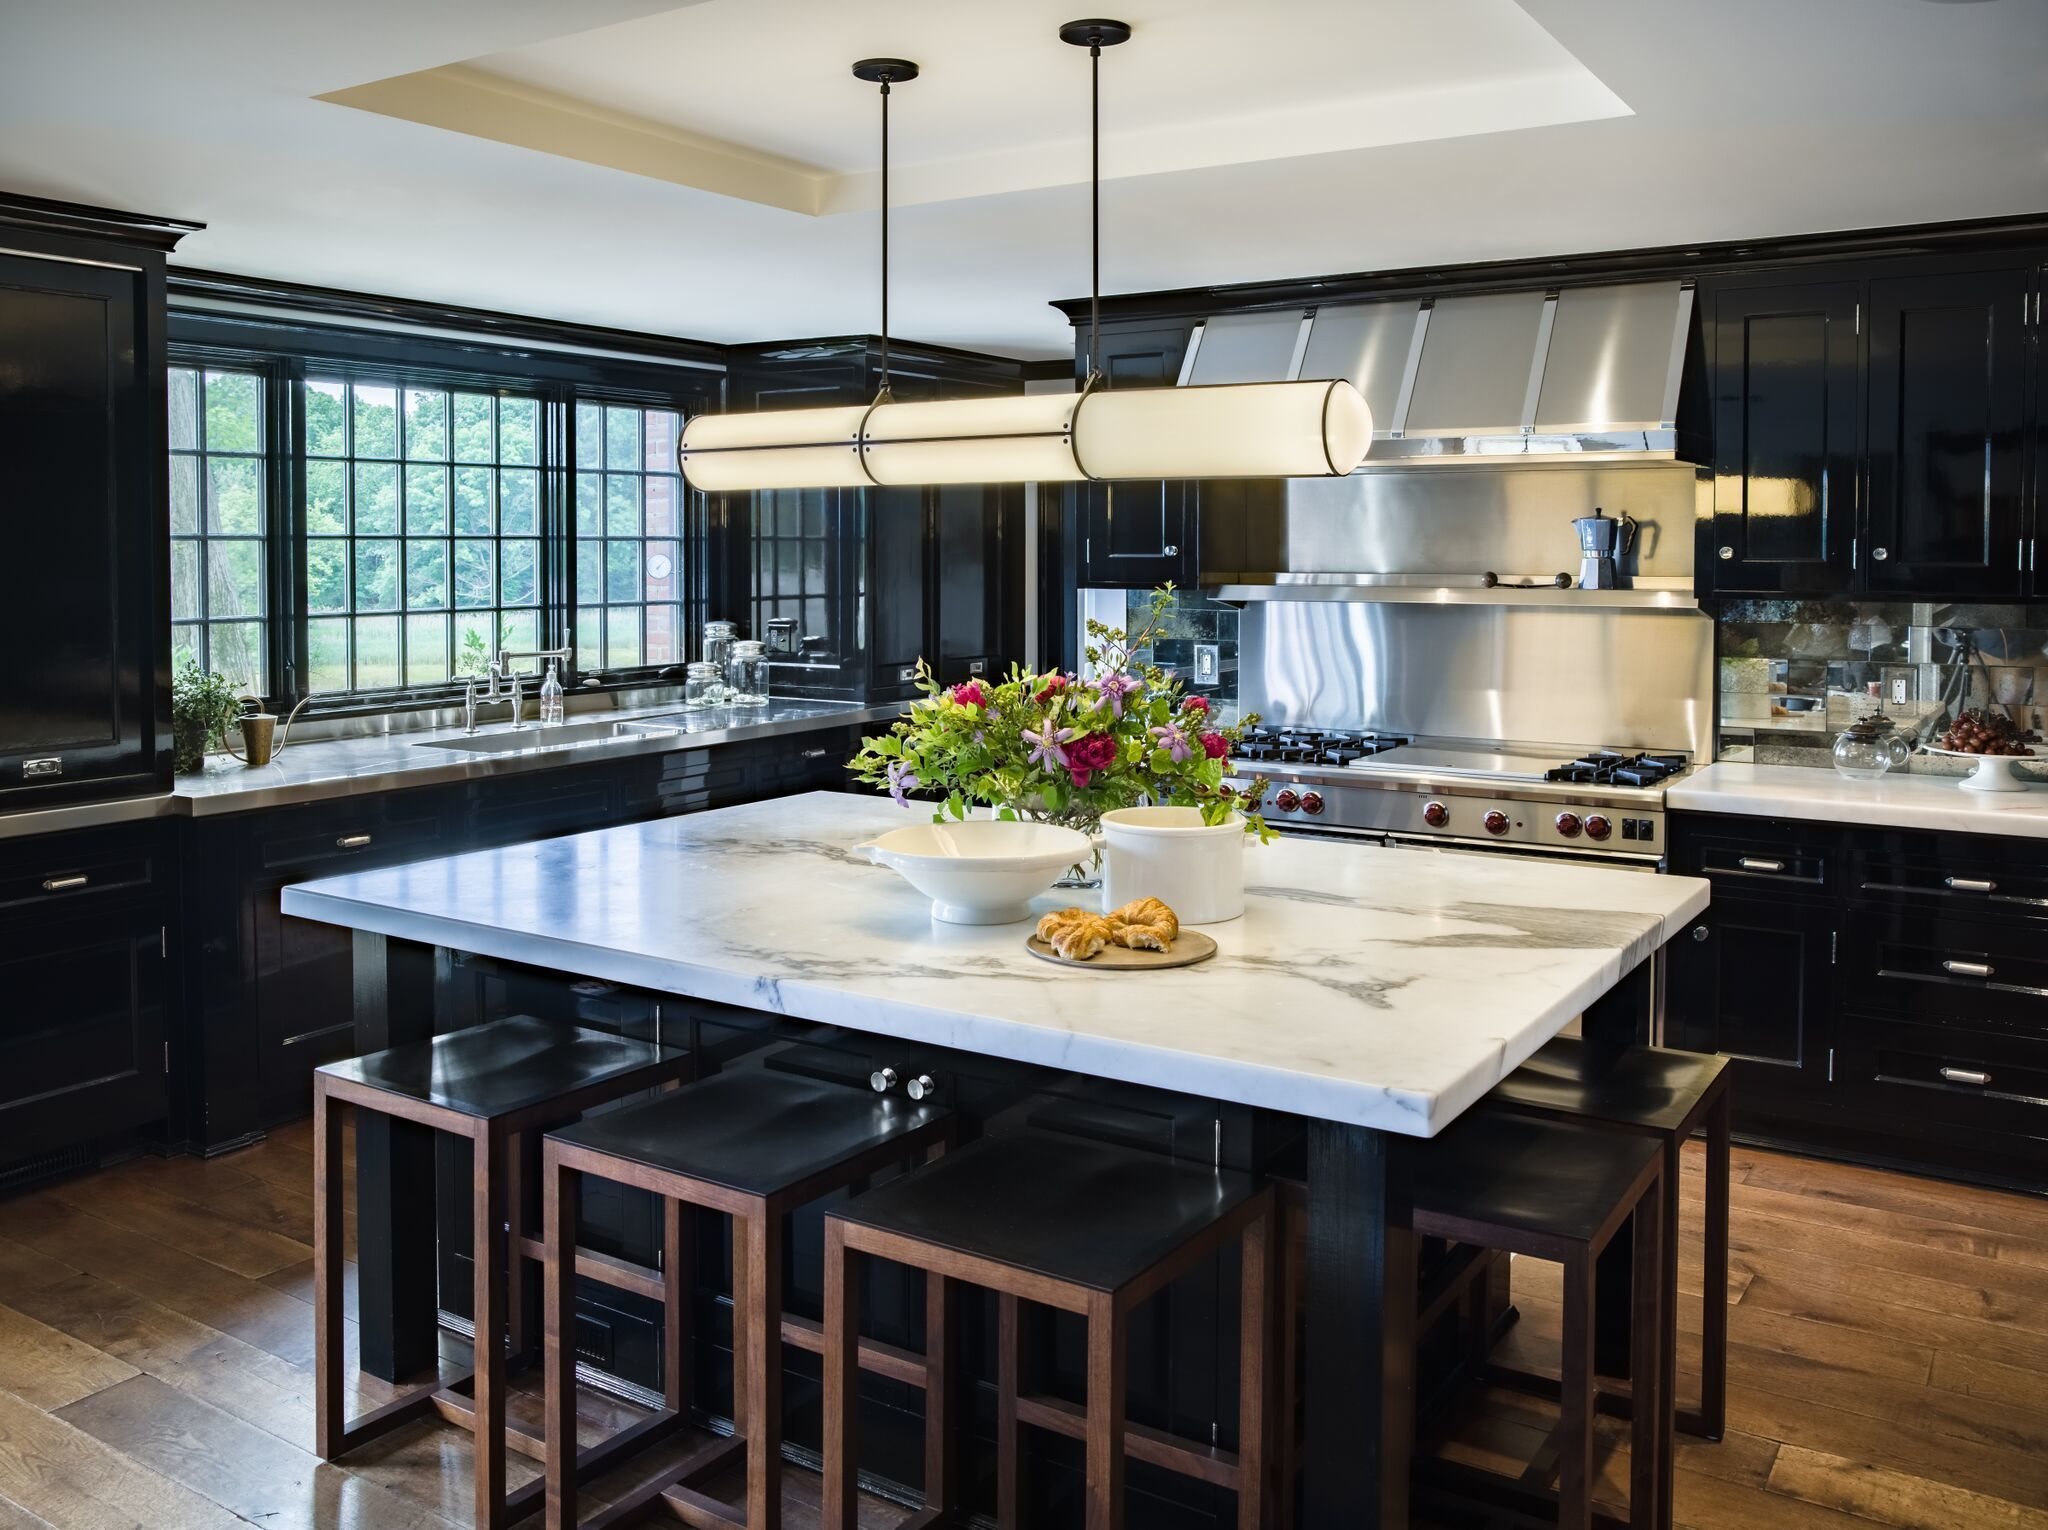 30 Black Kitchen Cabinets In Beautiful Cooking Spaces